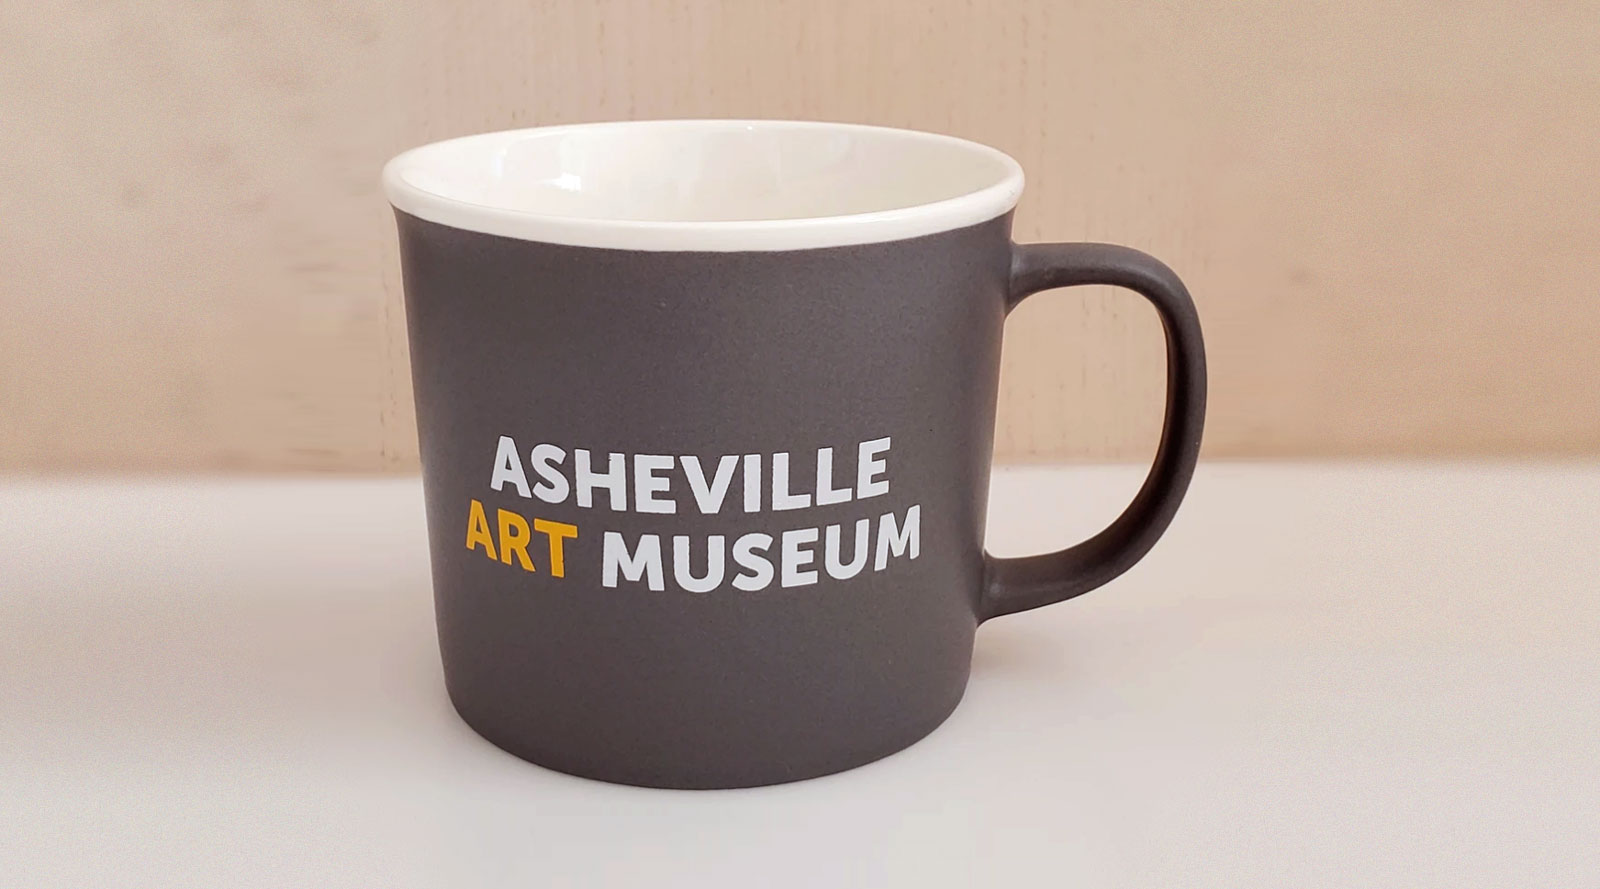 Asheville Art Museum coffee mug with white and yellow logo against a gray glaze